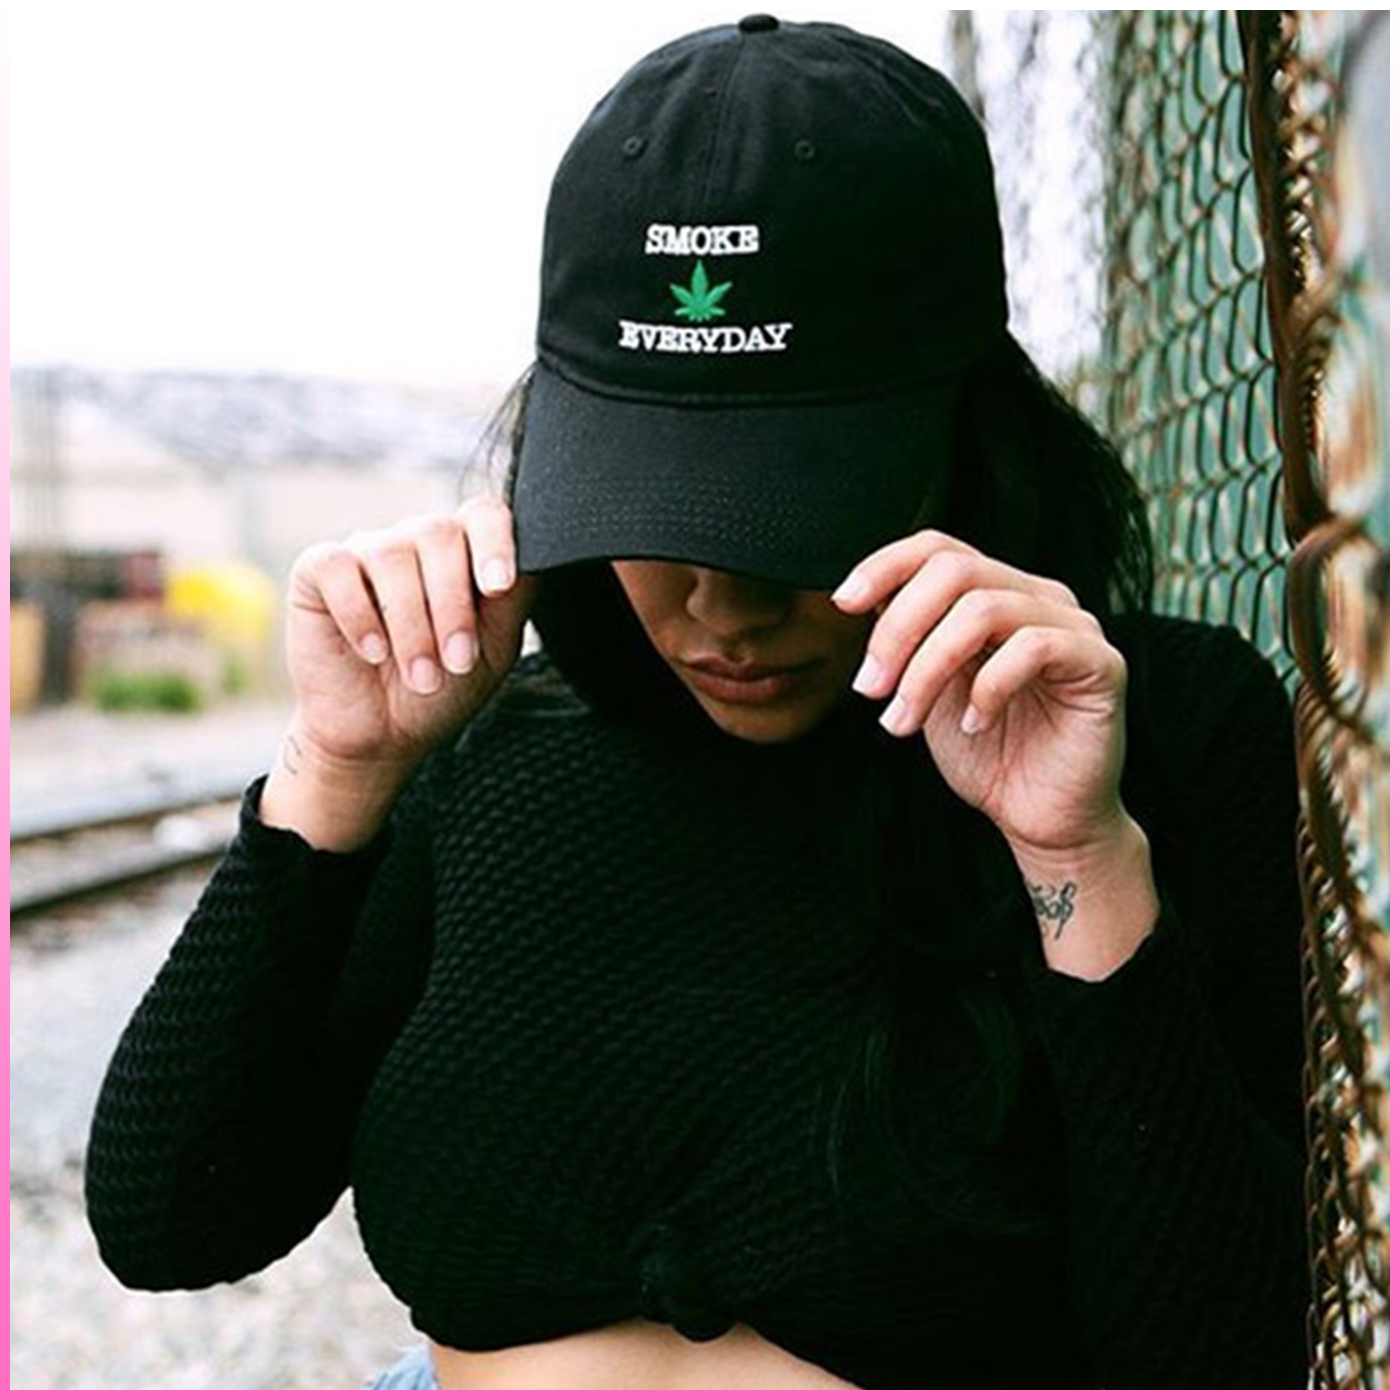 8d159603ee3 UNISEX GHETTO SMOKE WEED EVERYDAY BASEBALL CAP IN BLACK · CYBEROTAKU ...